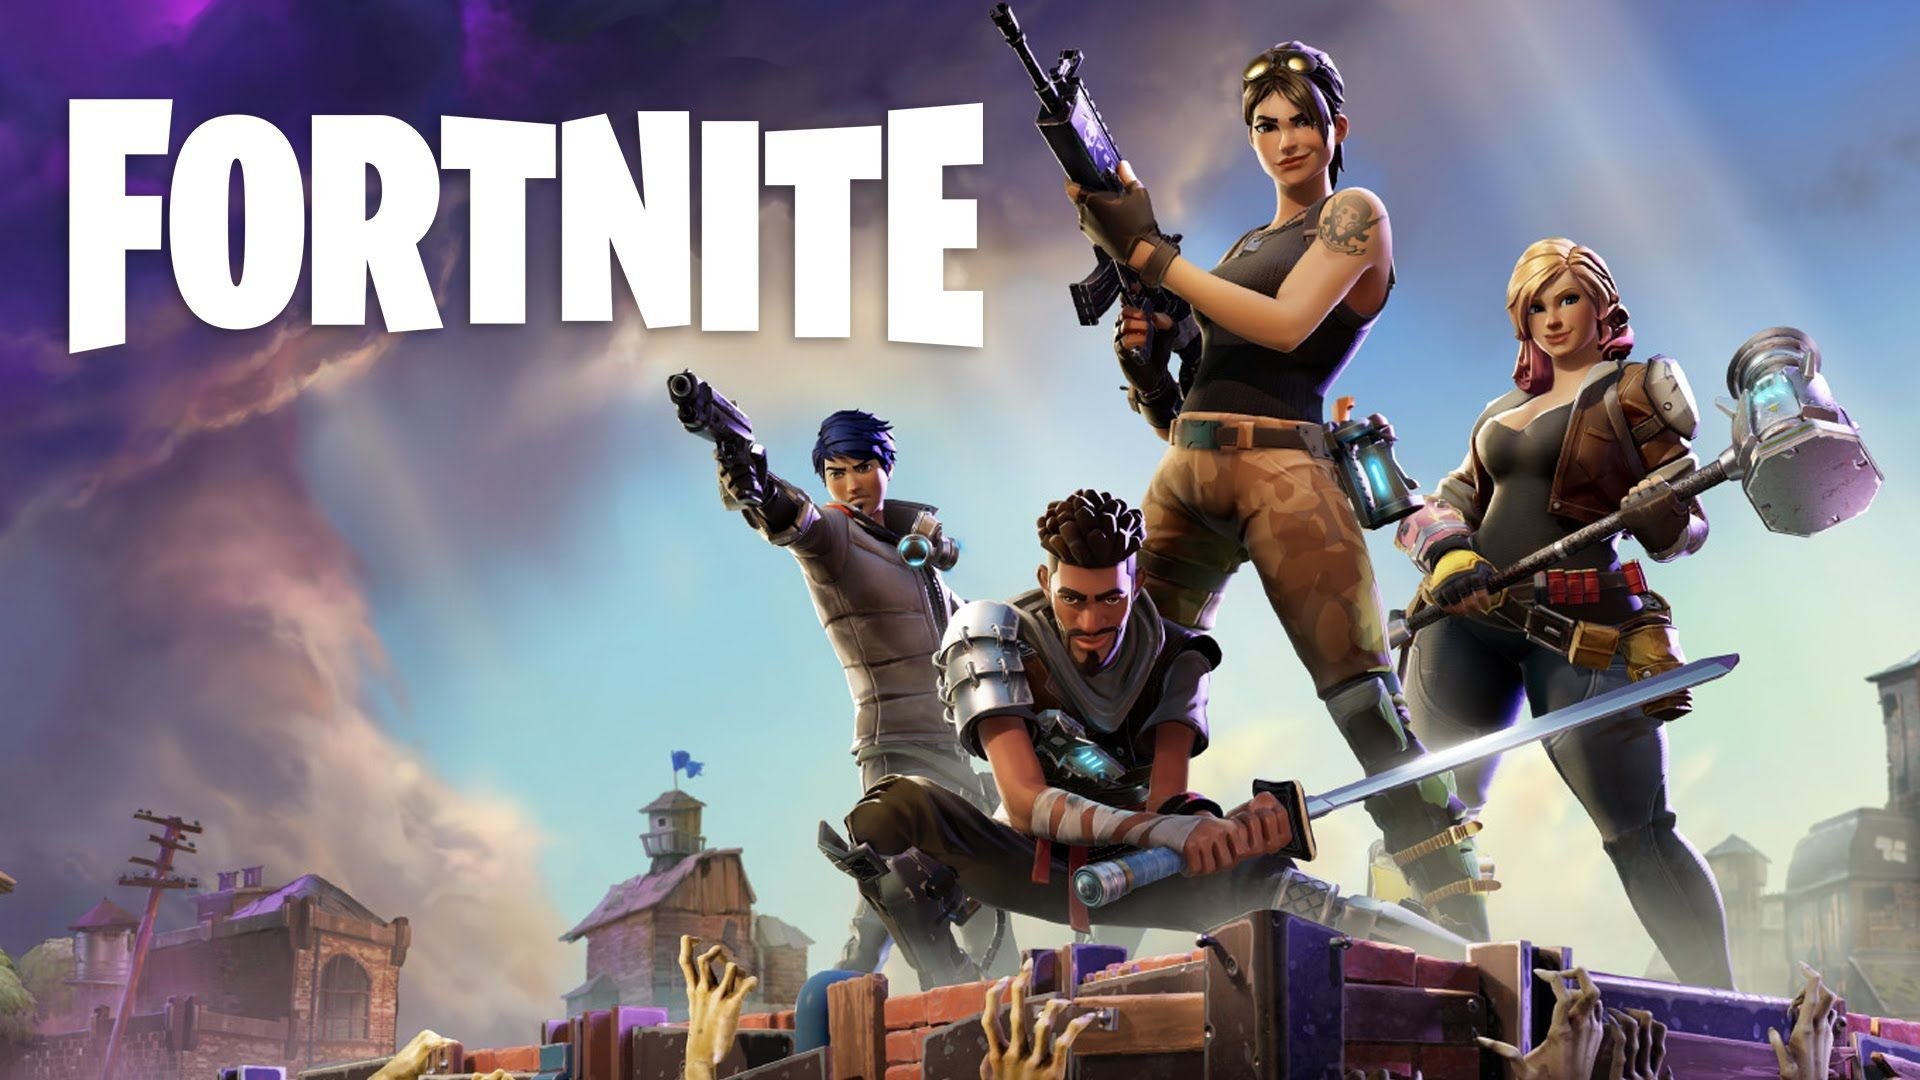 Fortnite Pc Wallpapers Top Free Fortnite Pc Backgrounds Wallpaperaccess